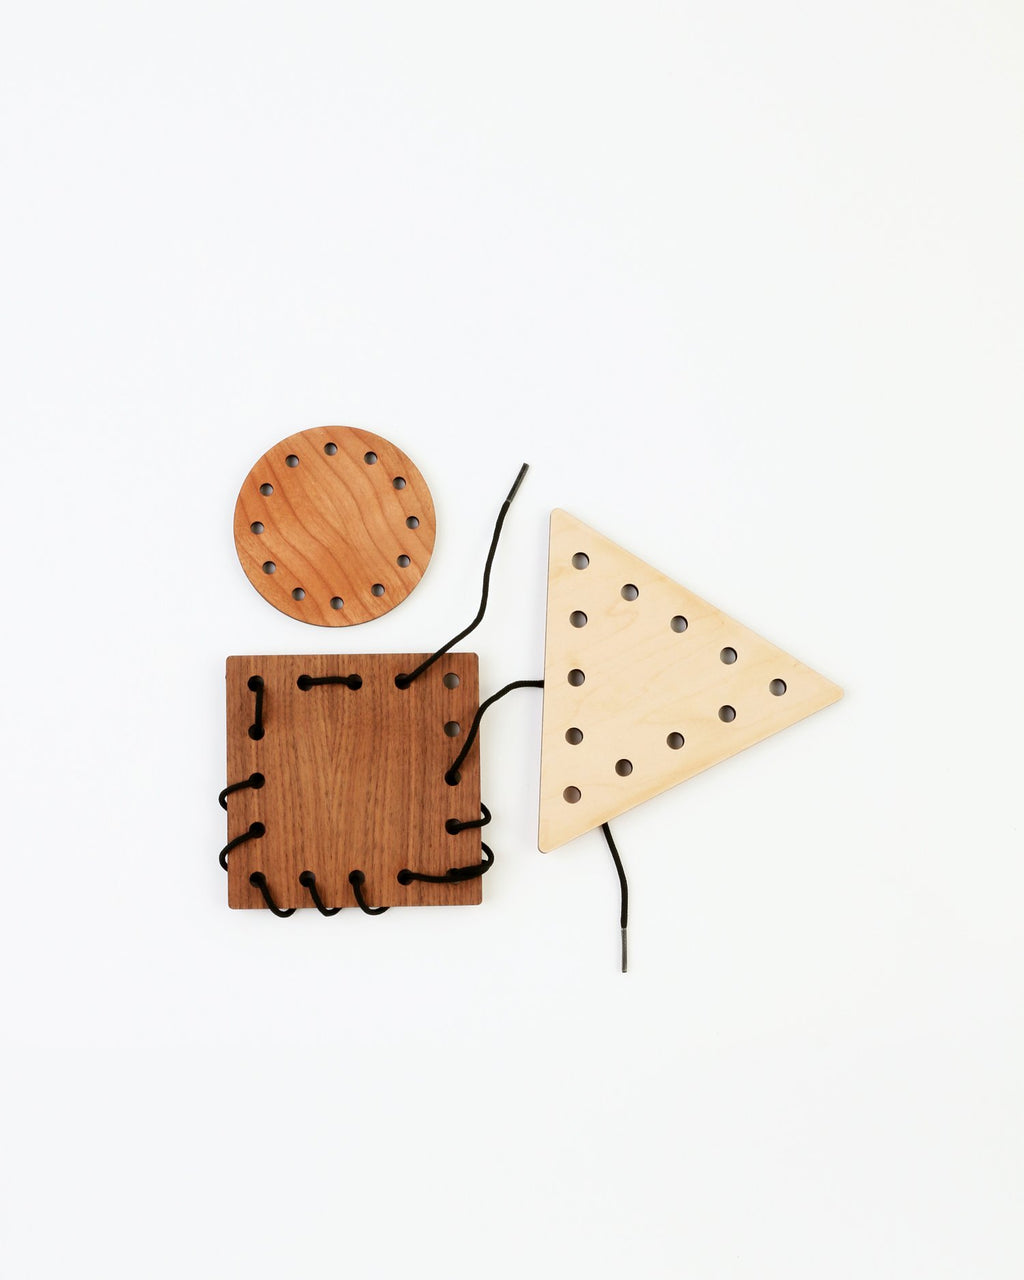 Geometric Lacing Toy - 3 Lacing Cards